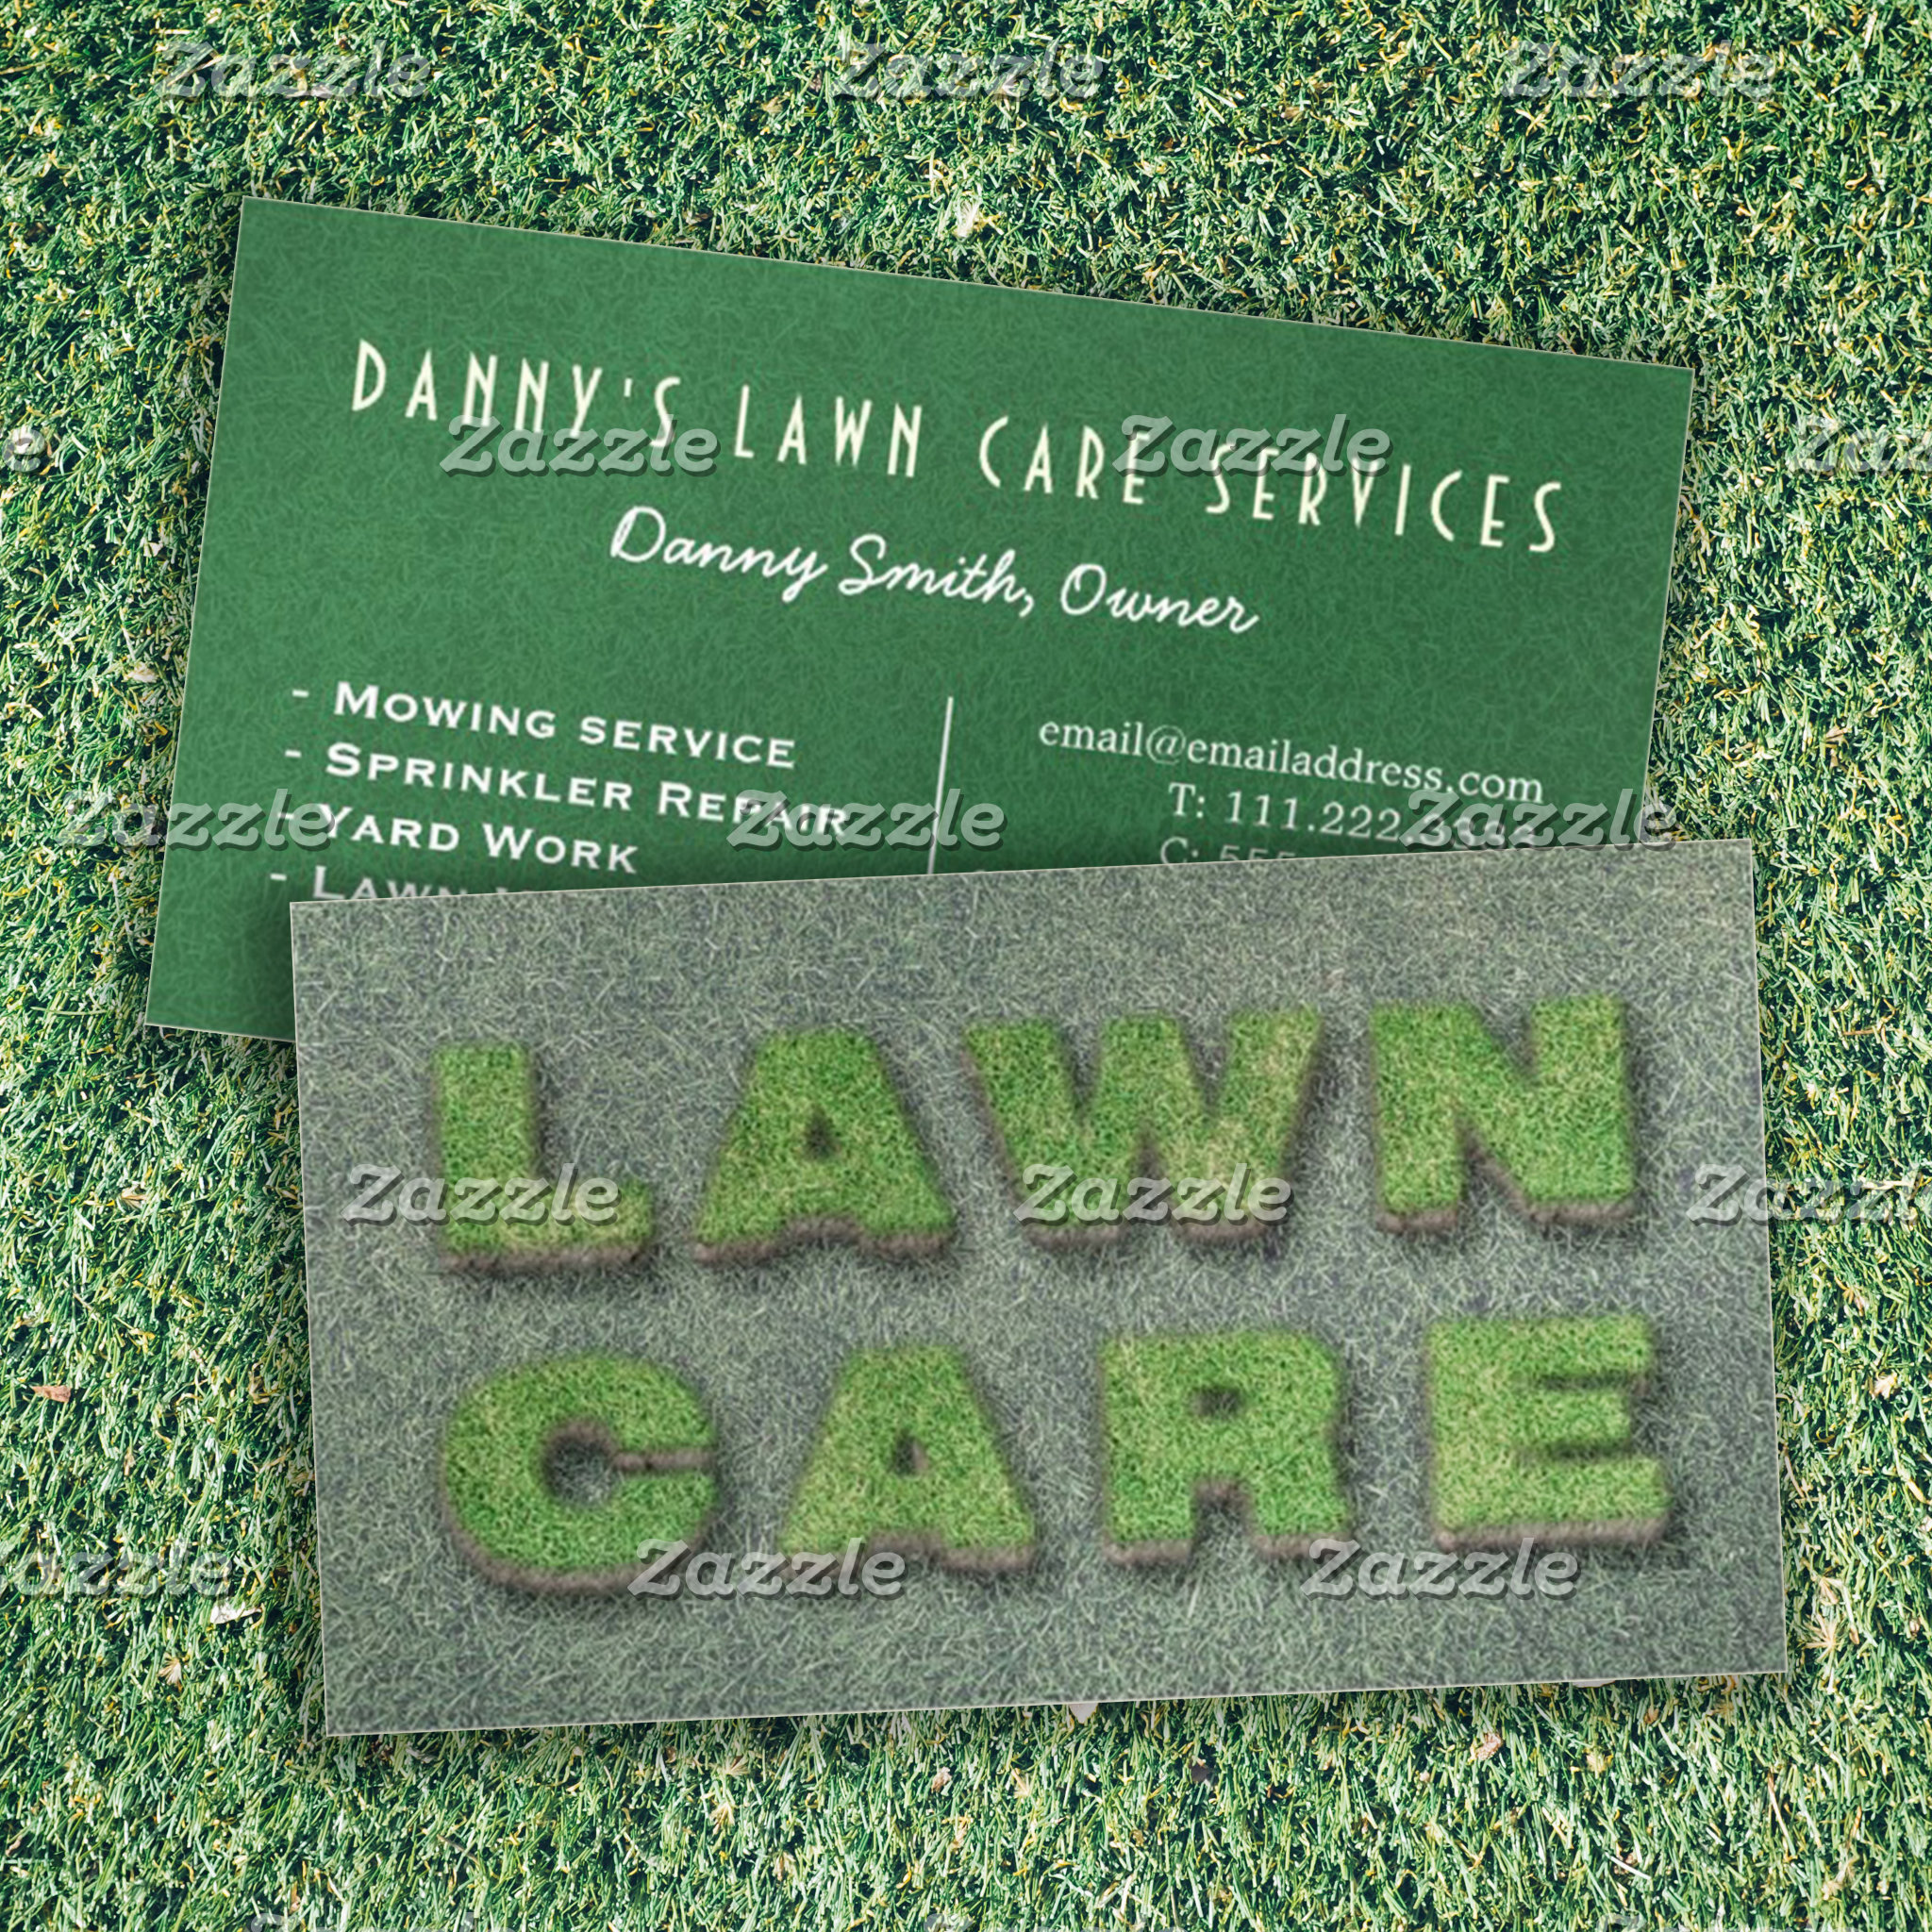 Landscaping / Gardening / Lawn Care